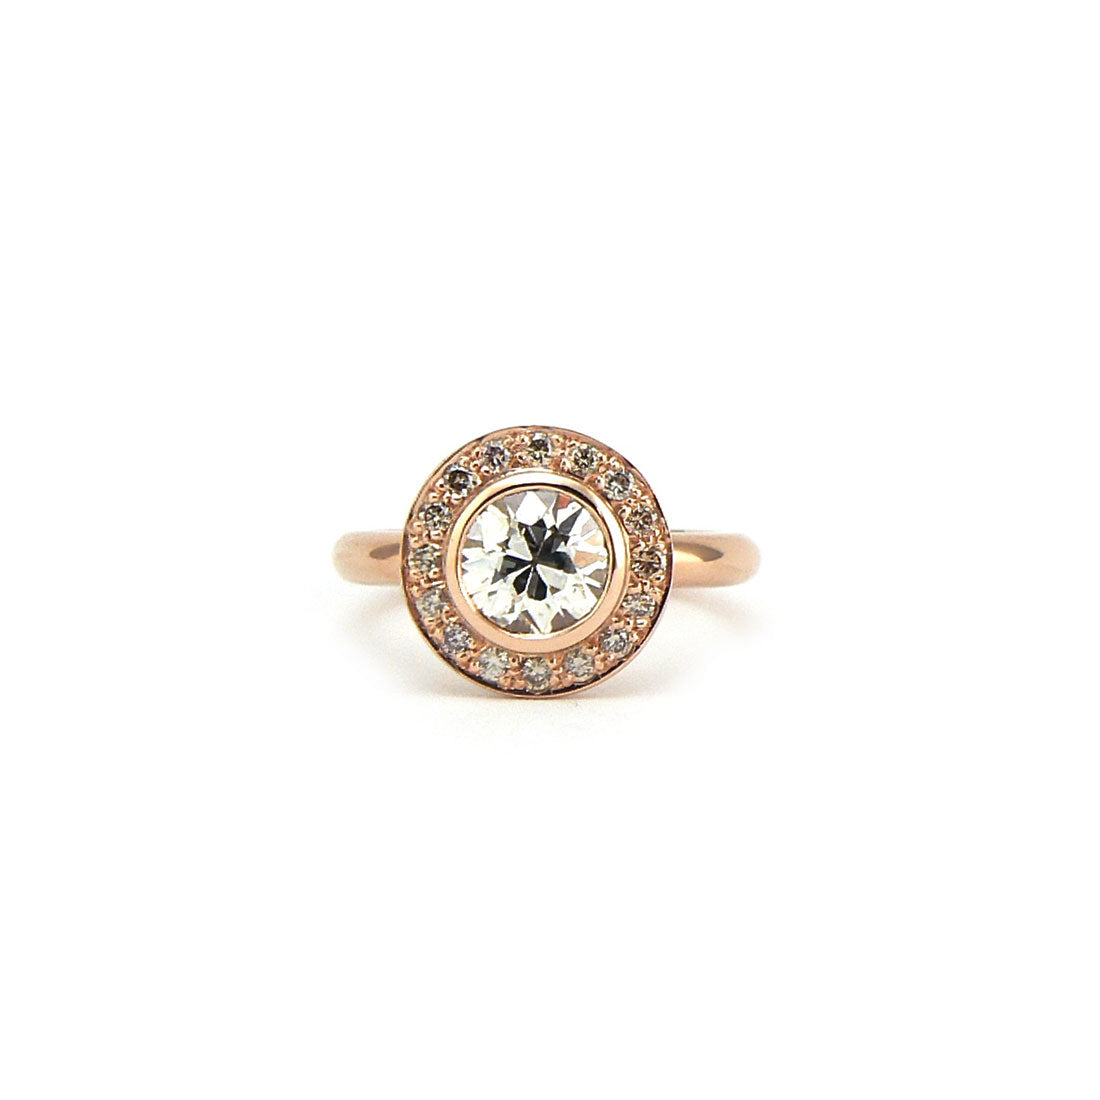 Engagement ring large white diamond surrounded by small diamonds on a 18ct rose gold band, Custom bespoke handmade.